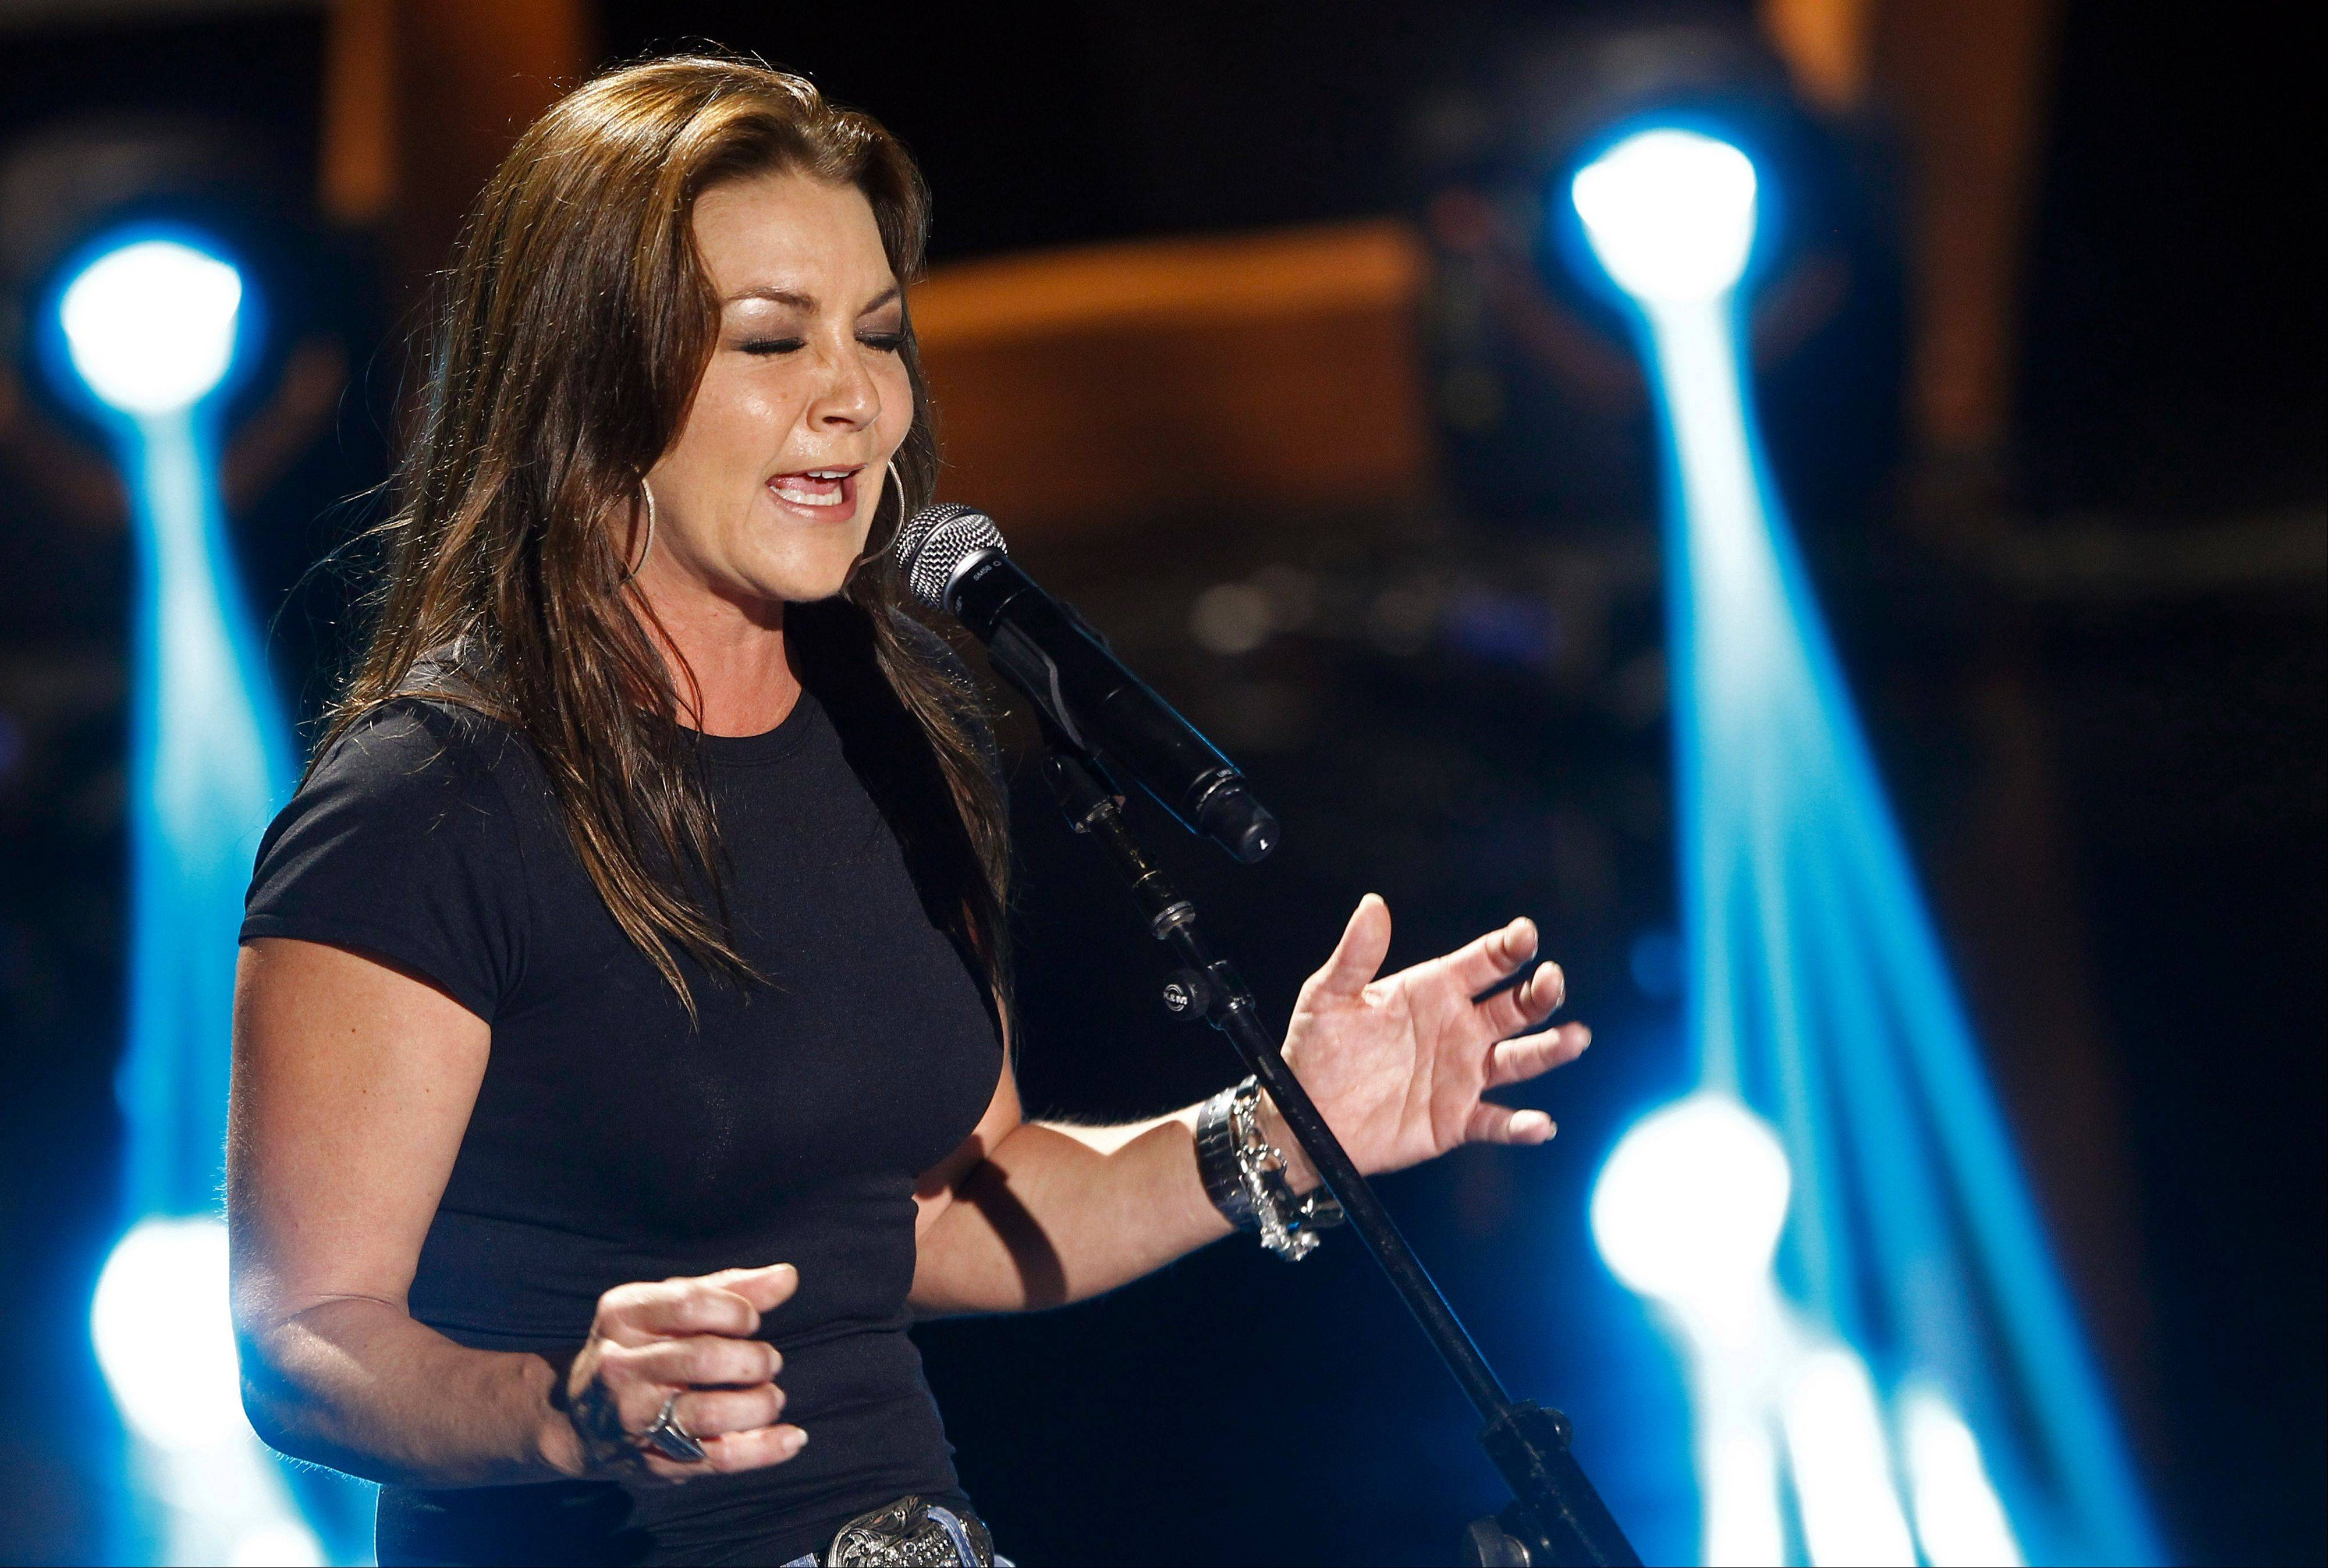 Gretchen Wilson headlines the Arcada Theatre in St. Charles on Friday, May 24.